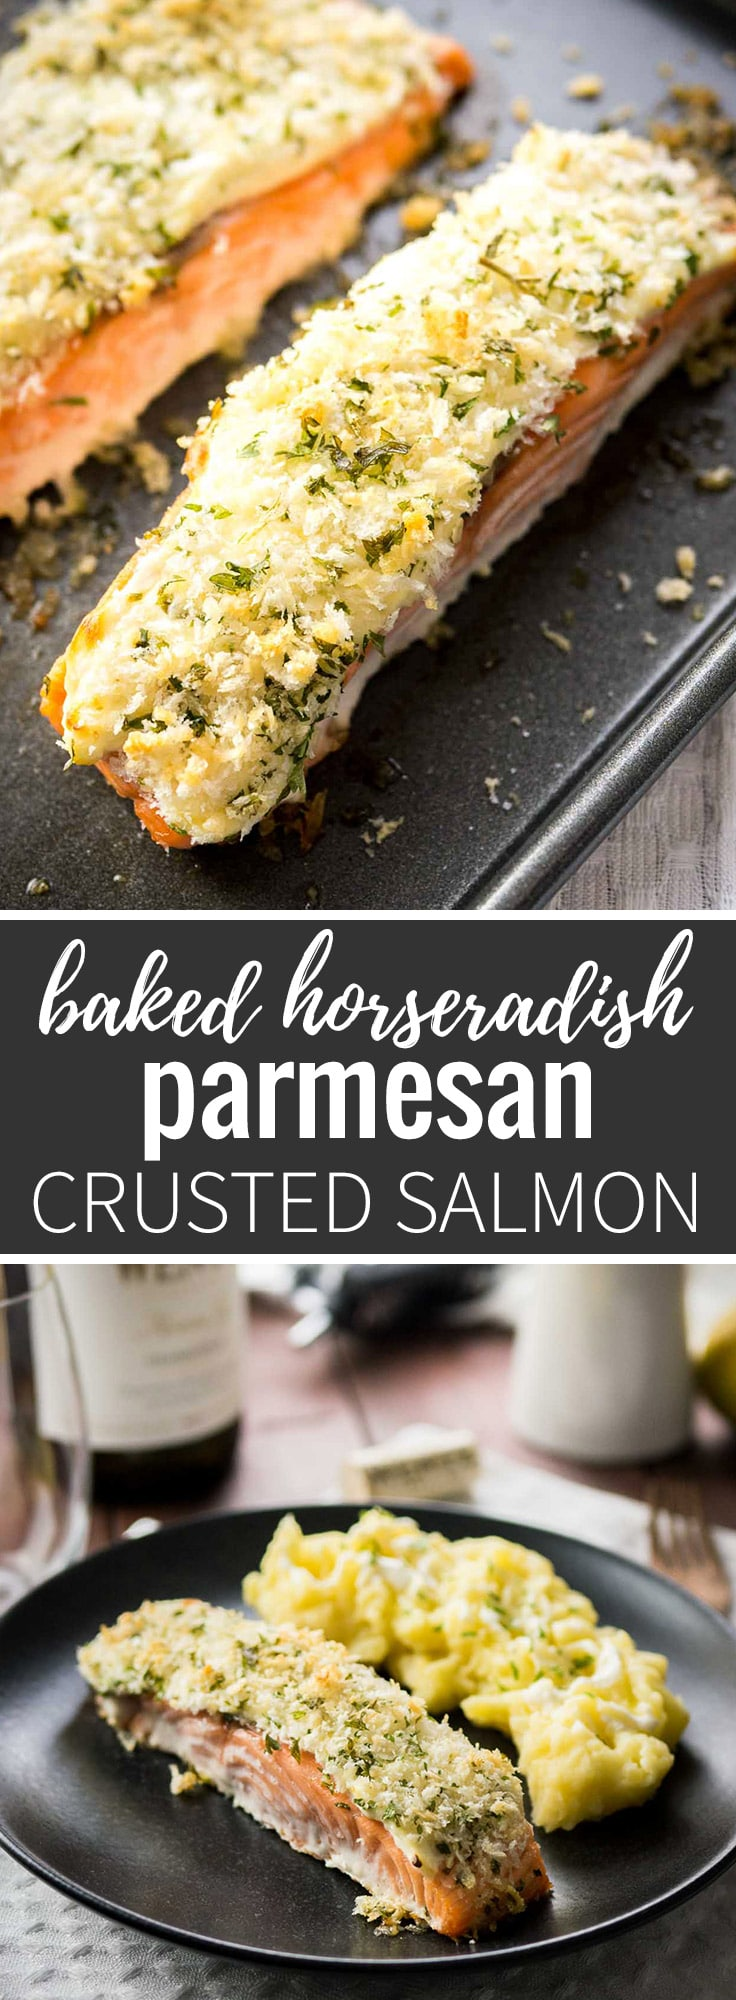 This Horseradish Parmesan Crusted Salmon is baked in the oven and only takes 20 minutes to make. A dinner fancy enough for guests but also easy enough for weeknights! #weeknightdinners #salmon #dinner #dinnerecipes